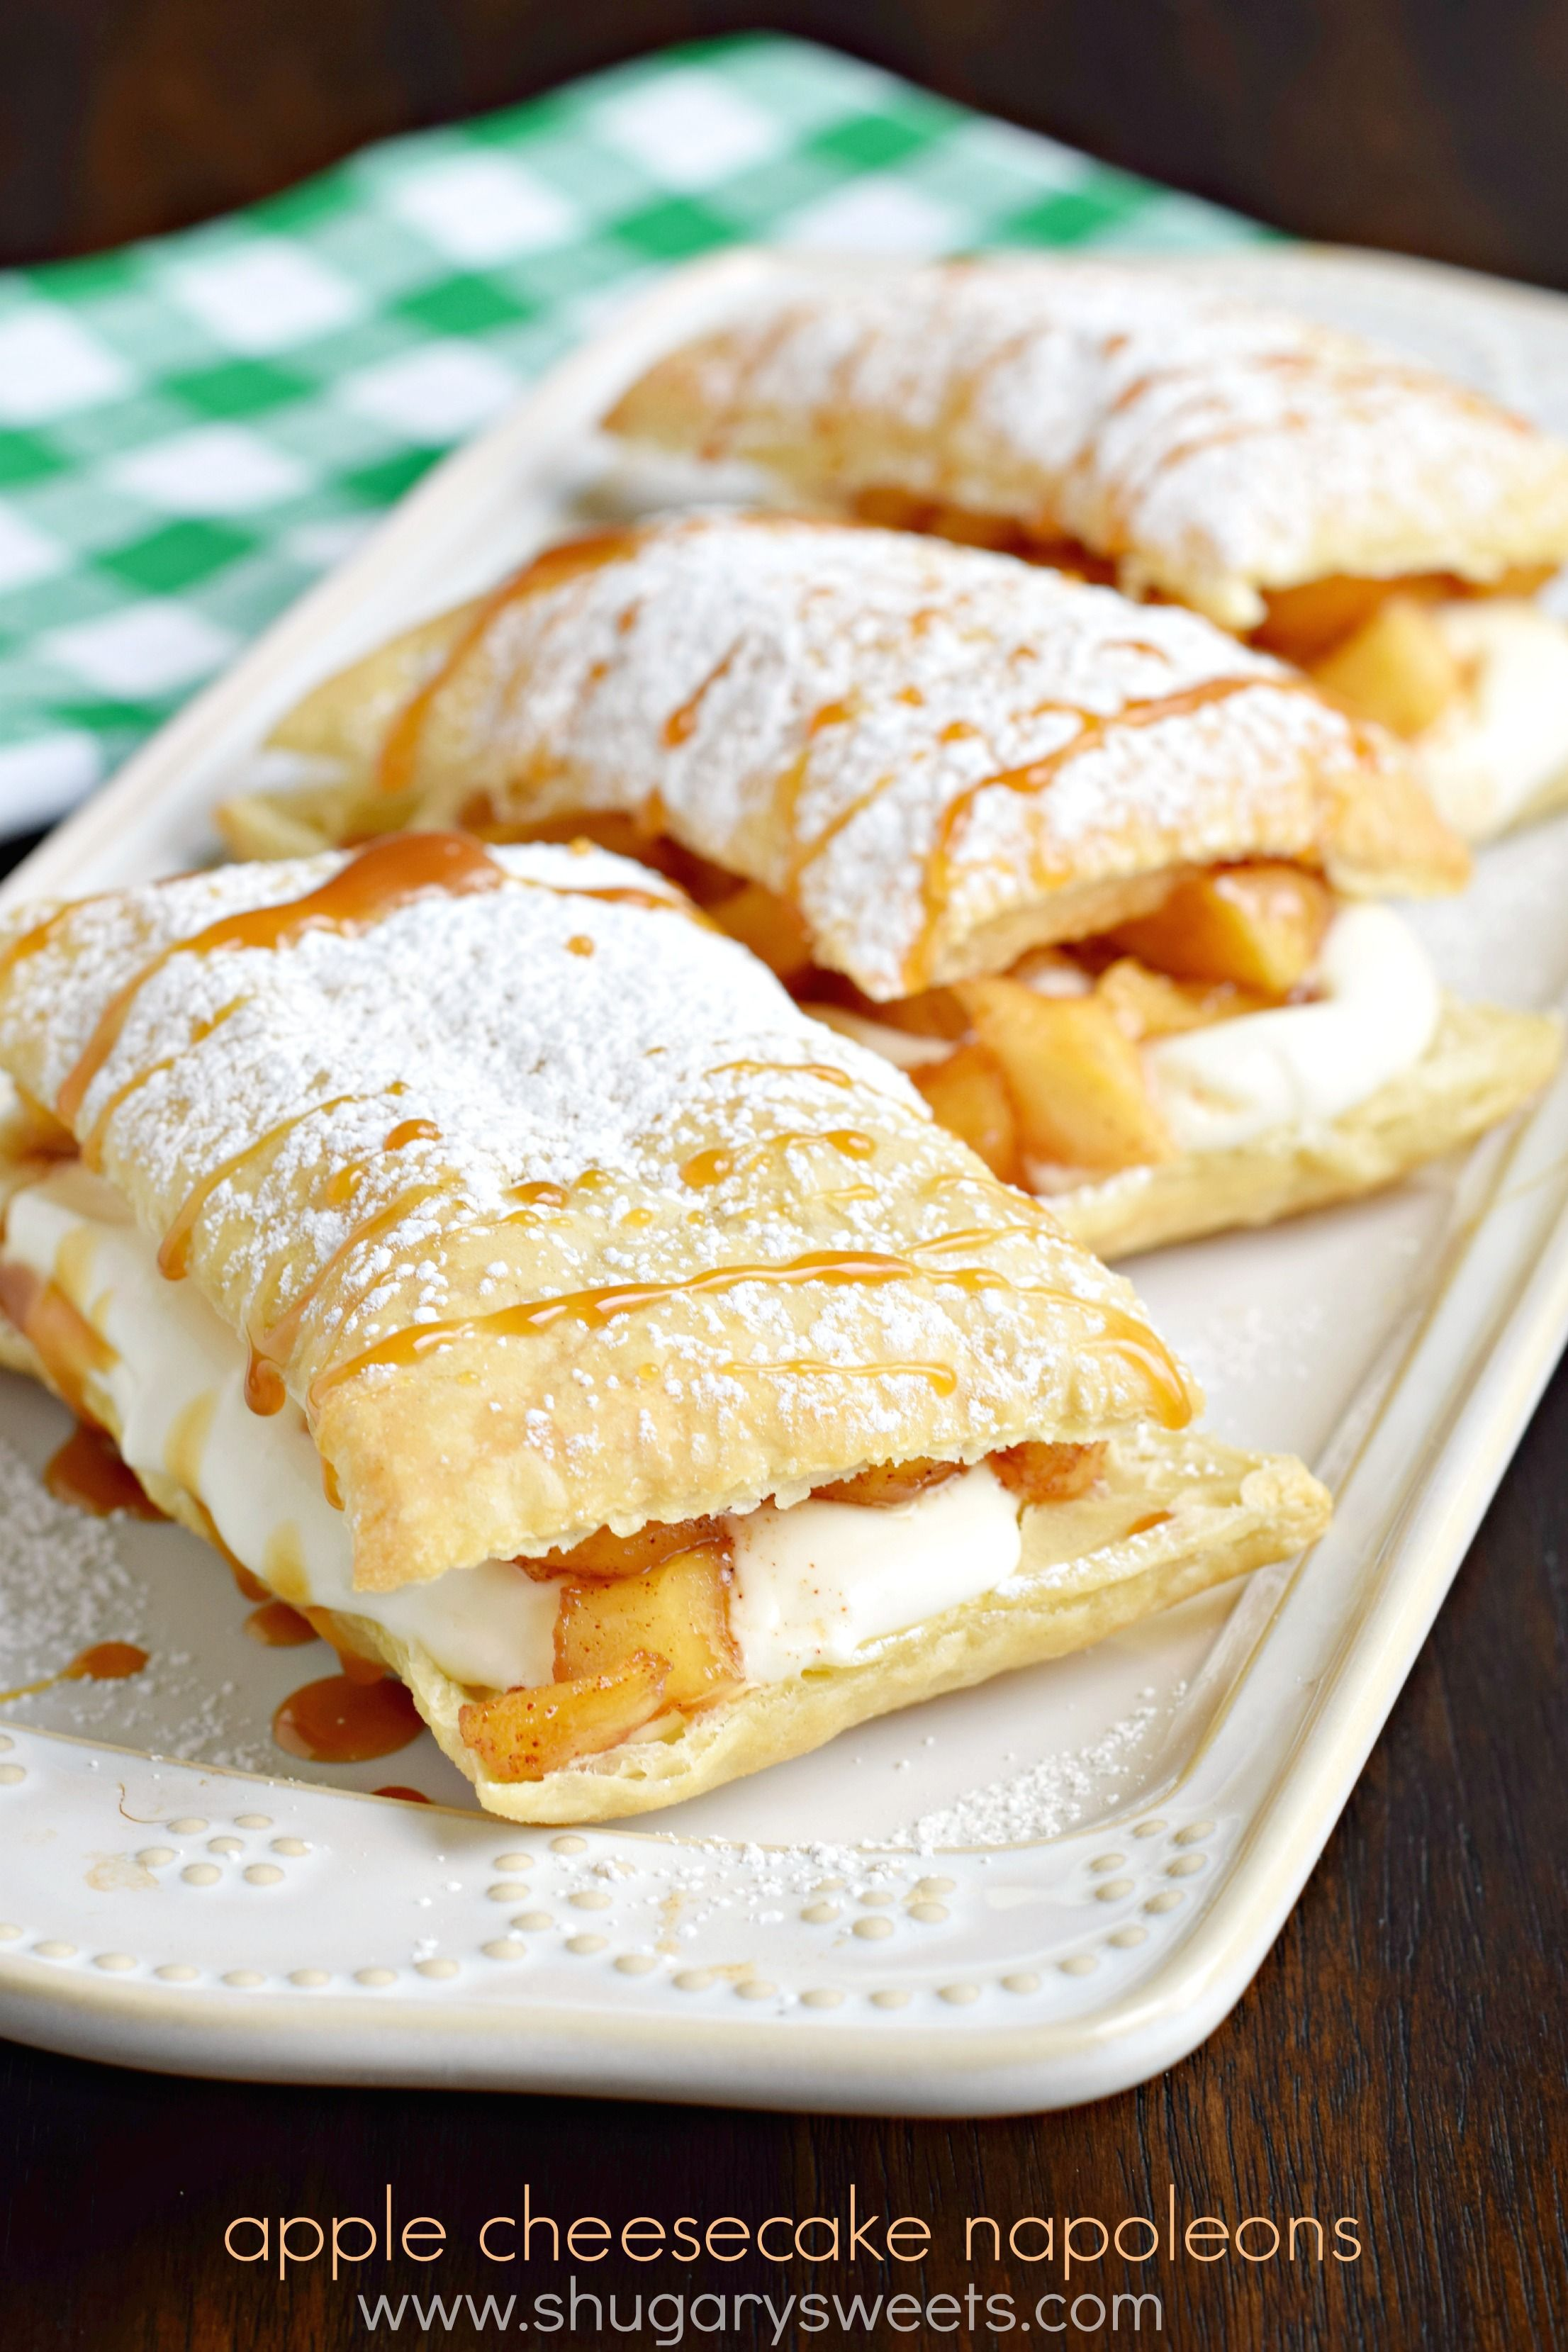 Caramel Apple Cheesecake Napoleons A Delicious Quick Comfort